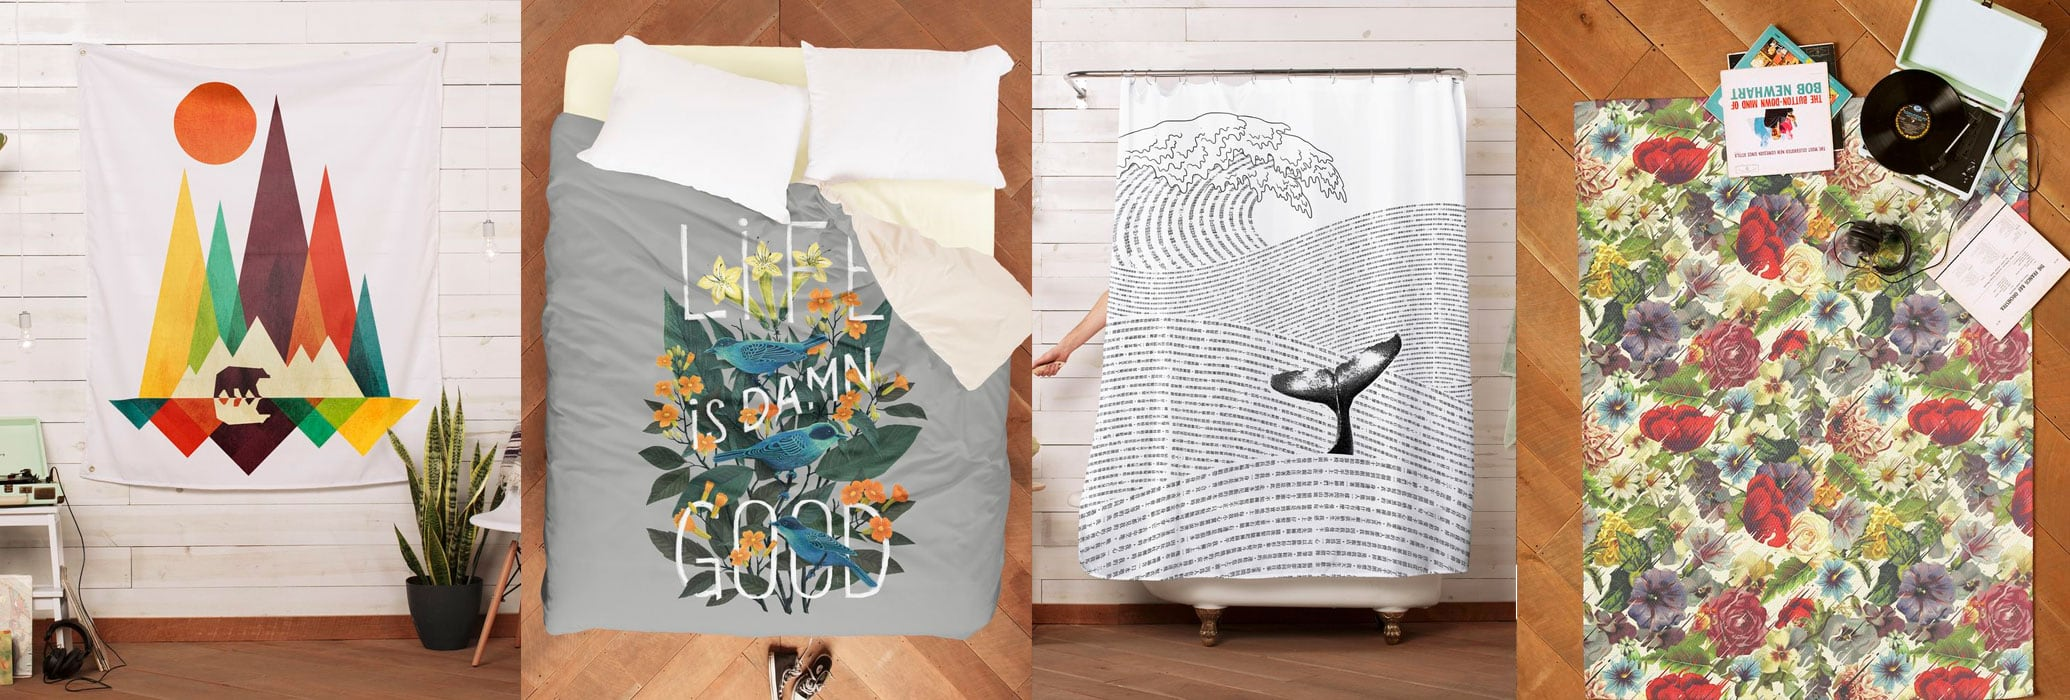 Superbe Offer Custom Products For Every Corner Of Every Room! Artist Shops Makes  Creating Home Decor Super Easy. From Throw Pillows U0026 Throw Rugs To Custom  Prints ...